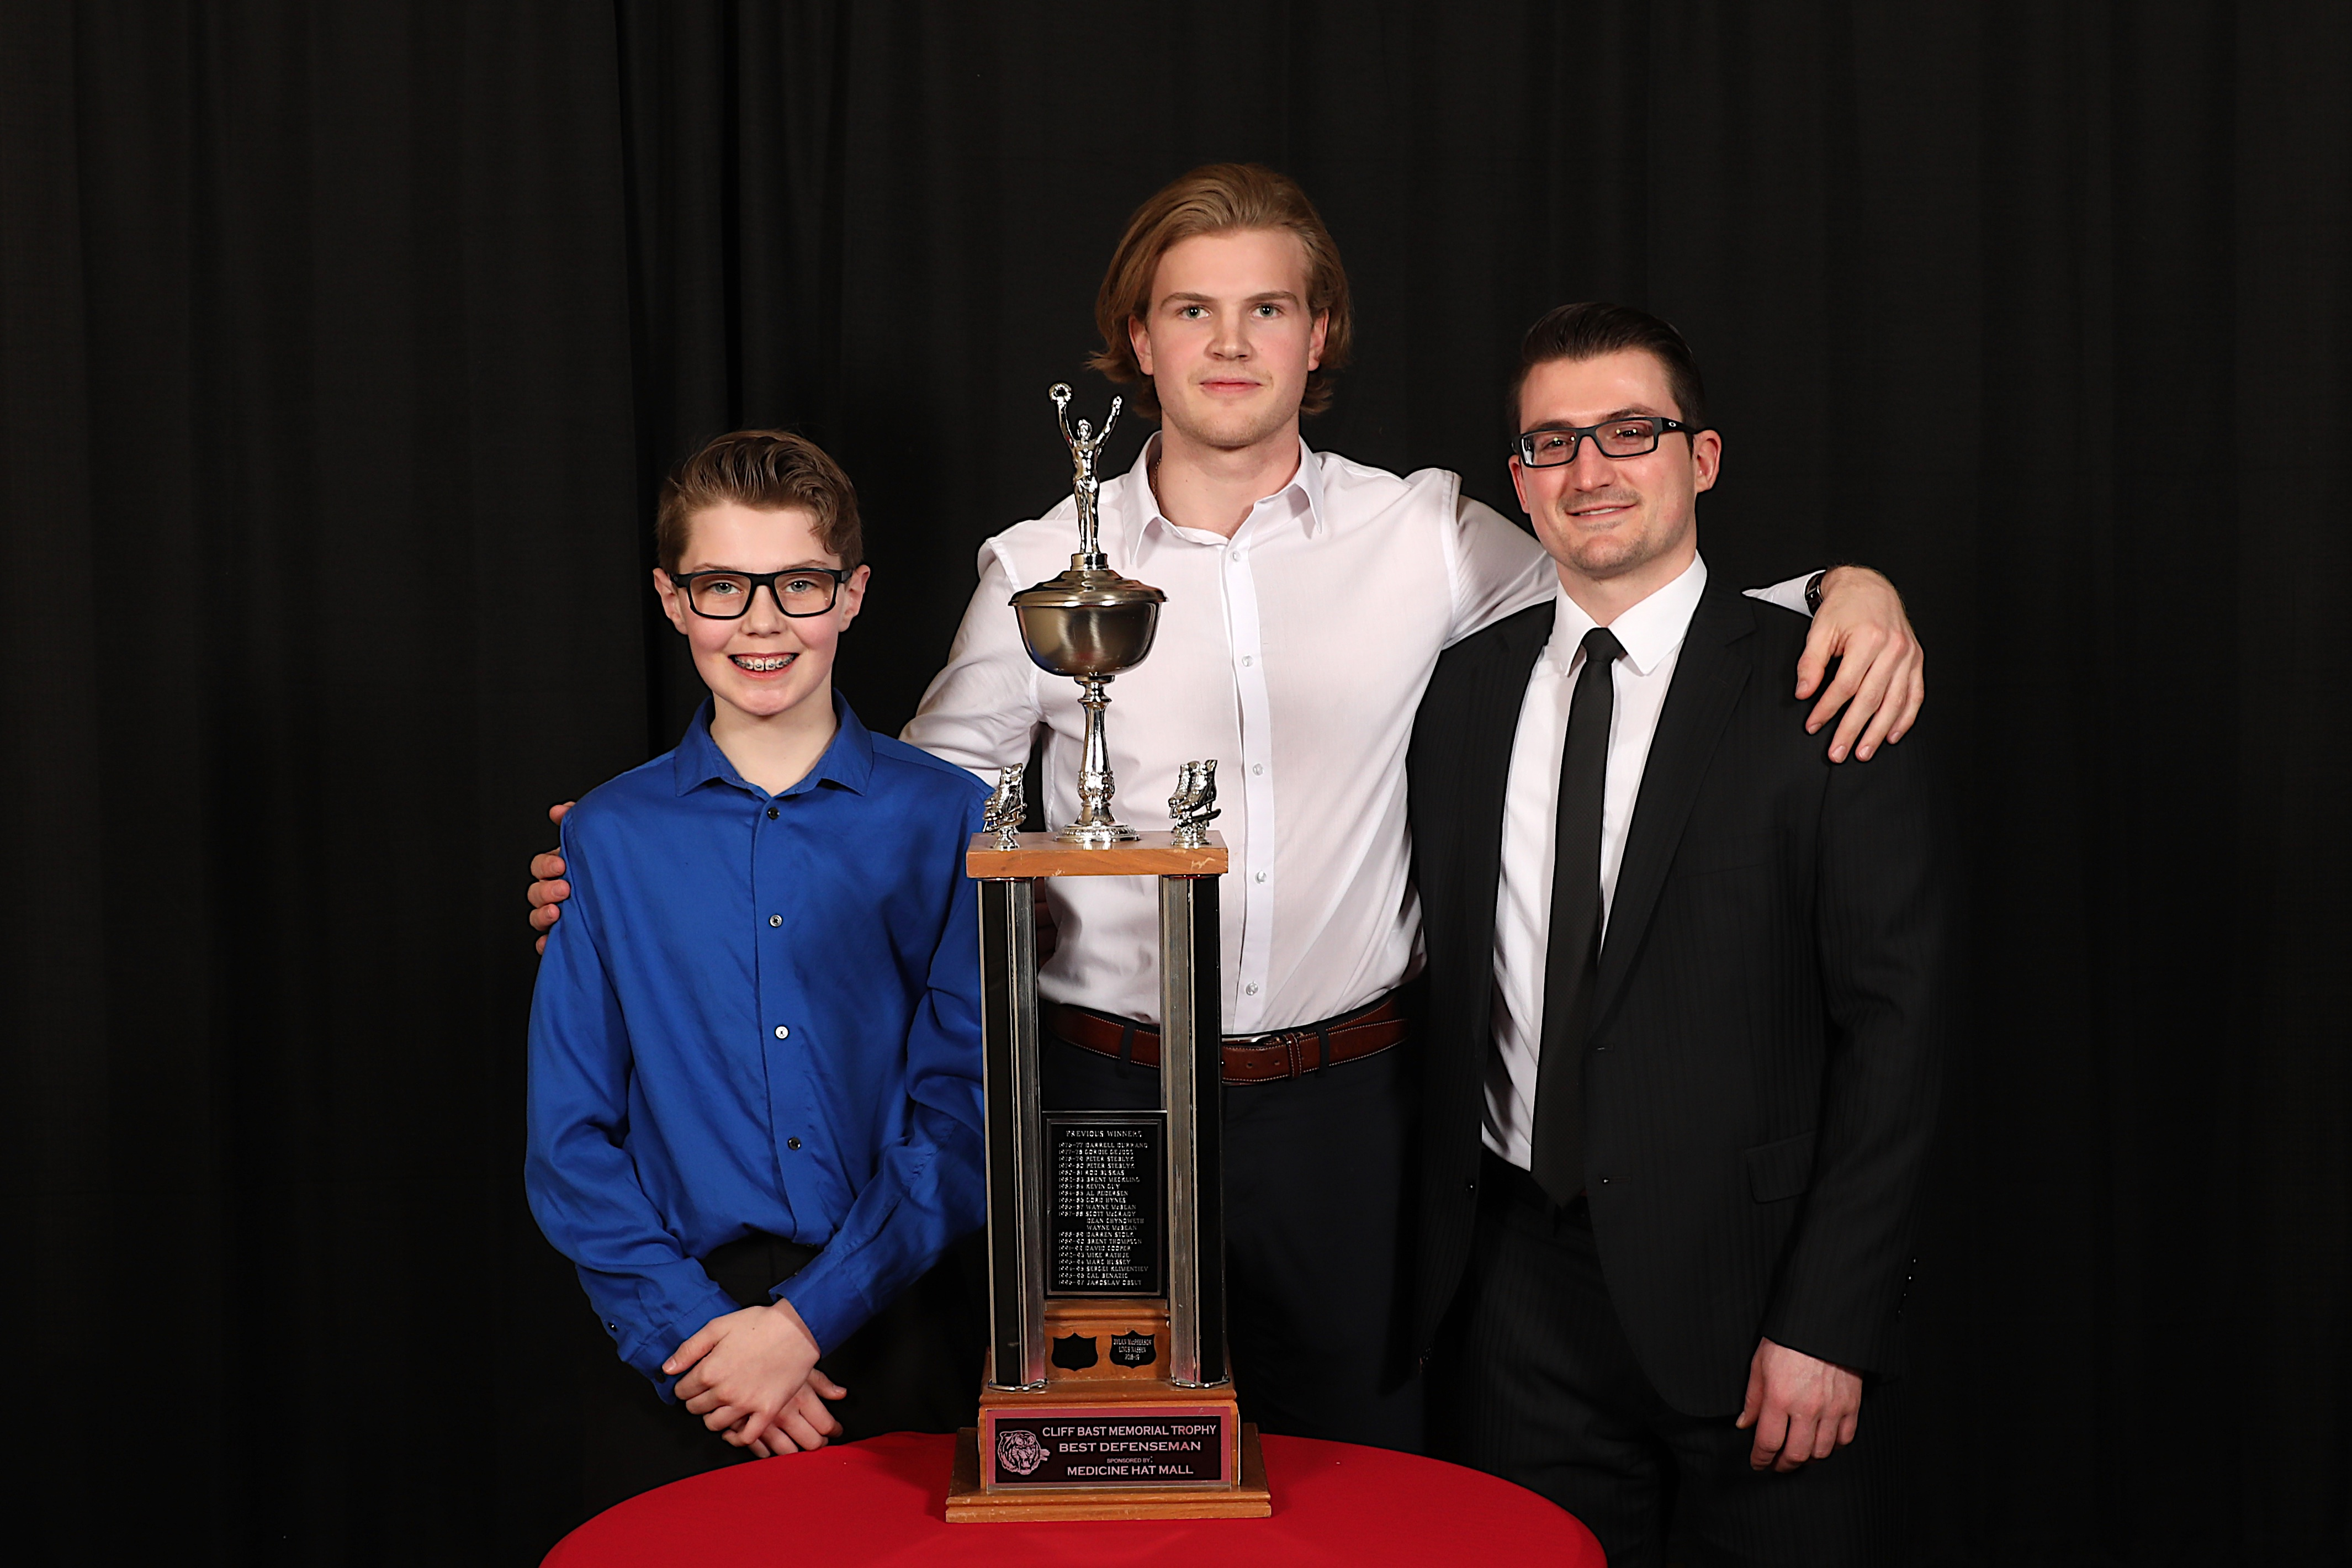 AC Joe Frazer presented the Cliff Bast Memorial Best Defenceman Award Sponsored by the Medicine Hat Mall to Linus Nassen & Dylan MacPherson (Landon MacPherson accepted on Dylan's behalf)